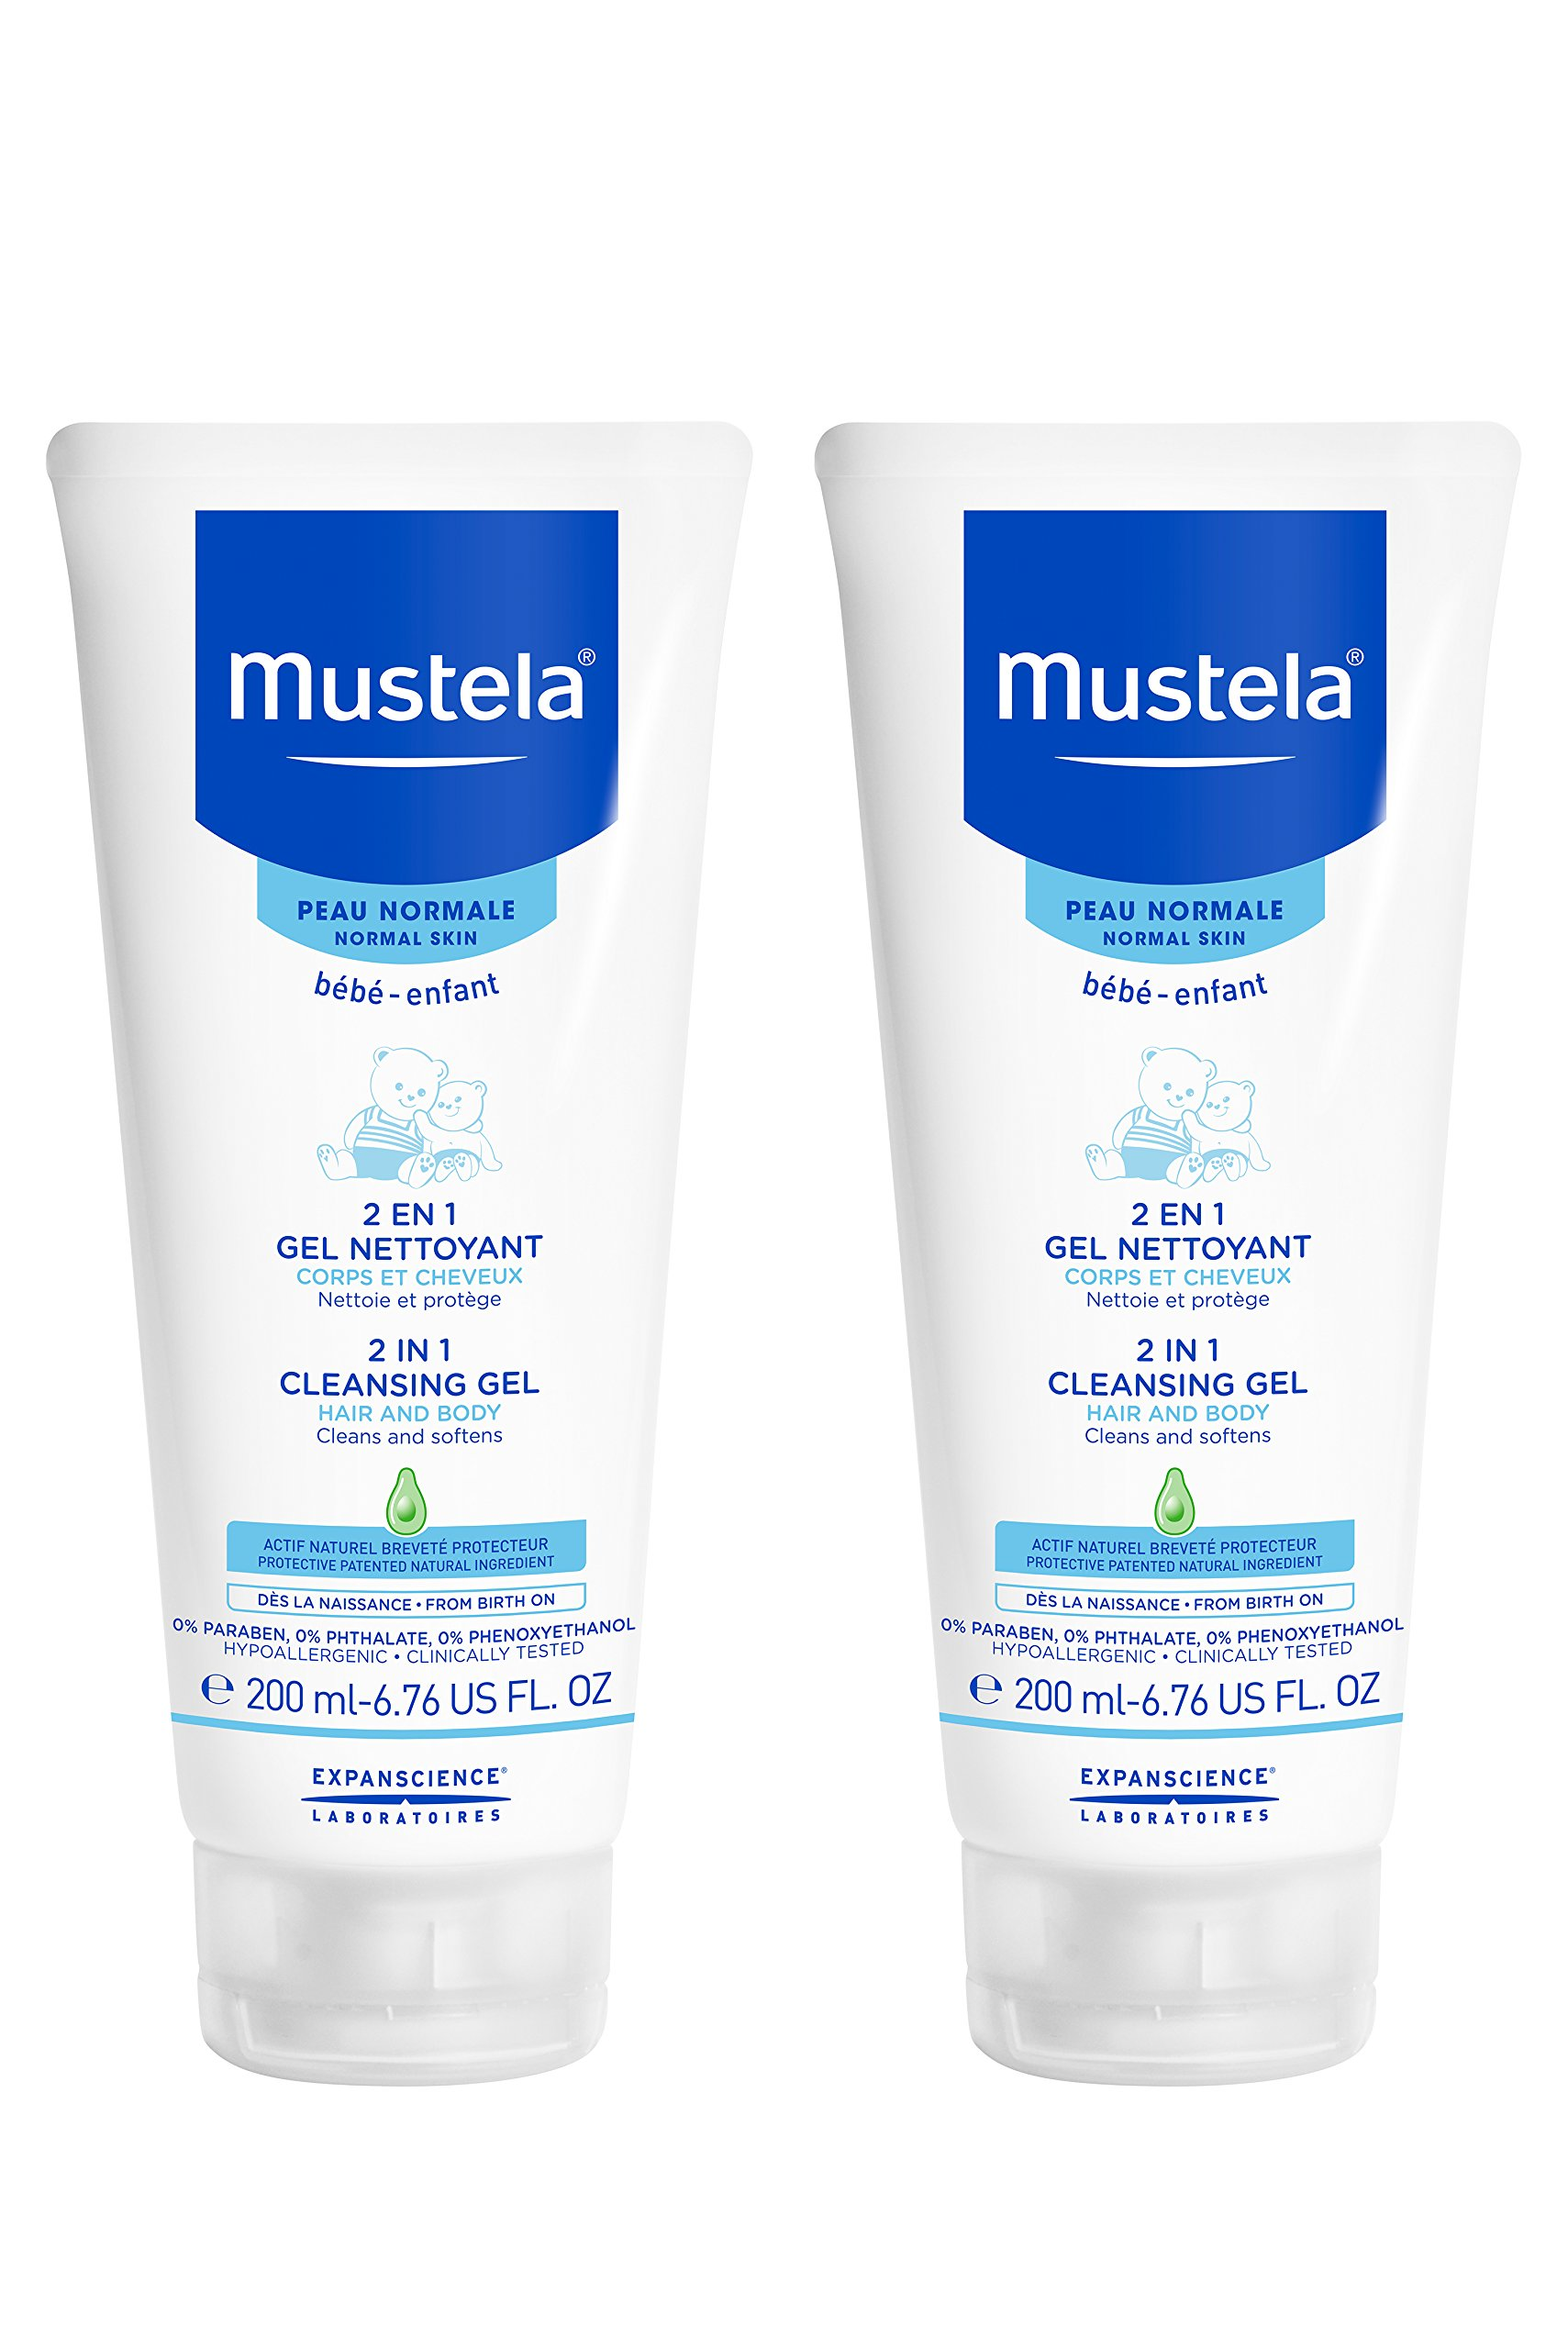 Mustela 2 in 1 Cleansing Gel, Baby Body & Hair Cleanser for Normal Skin,